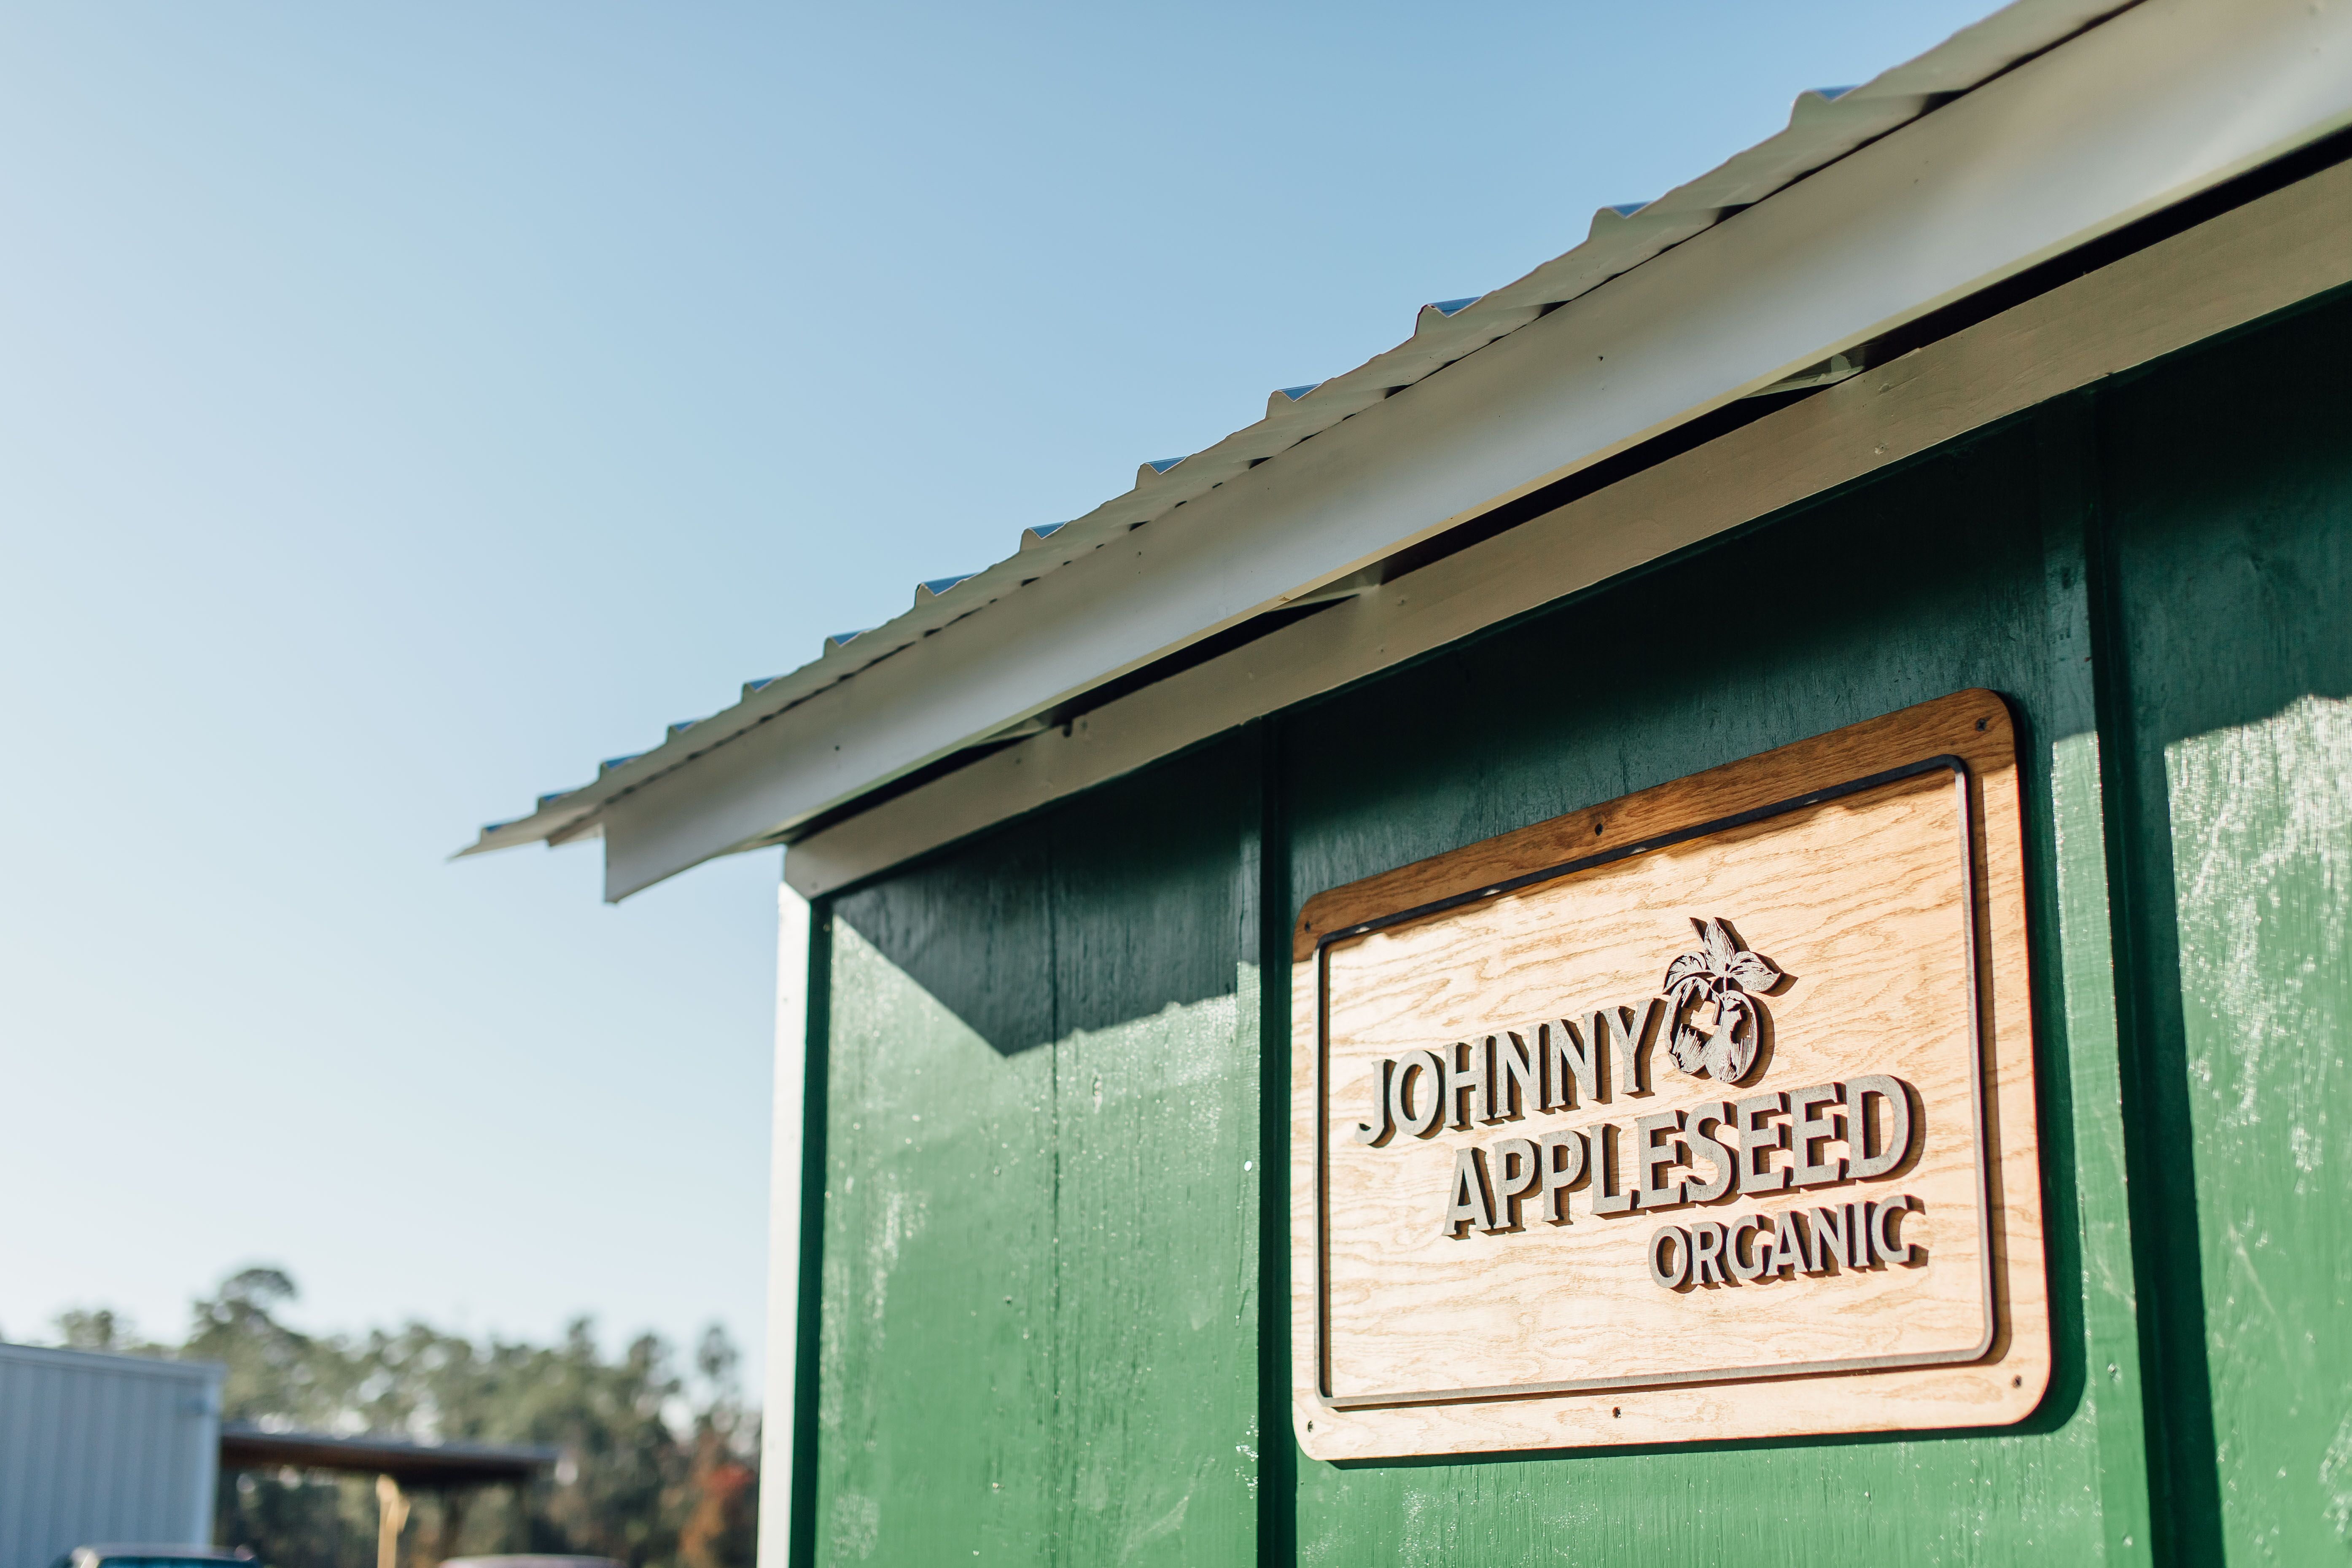 Johnny Appleseed Organic Farm